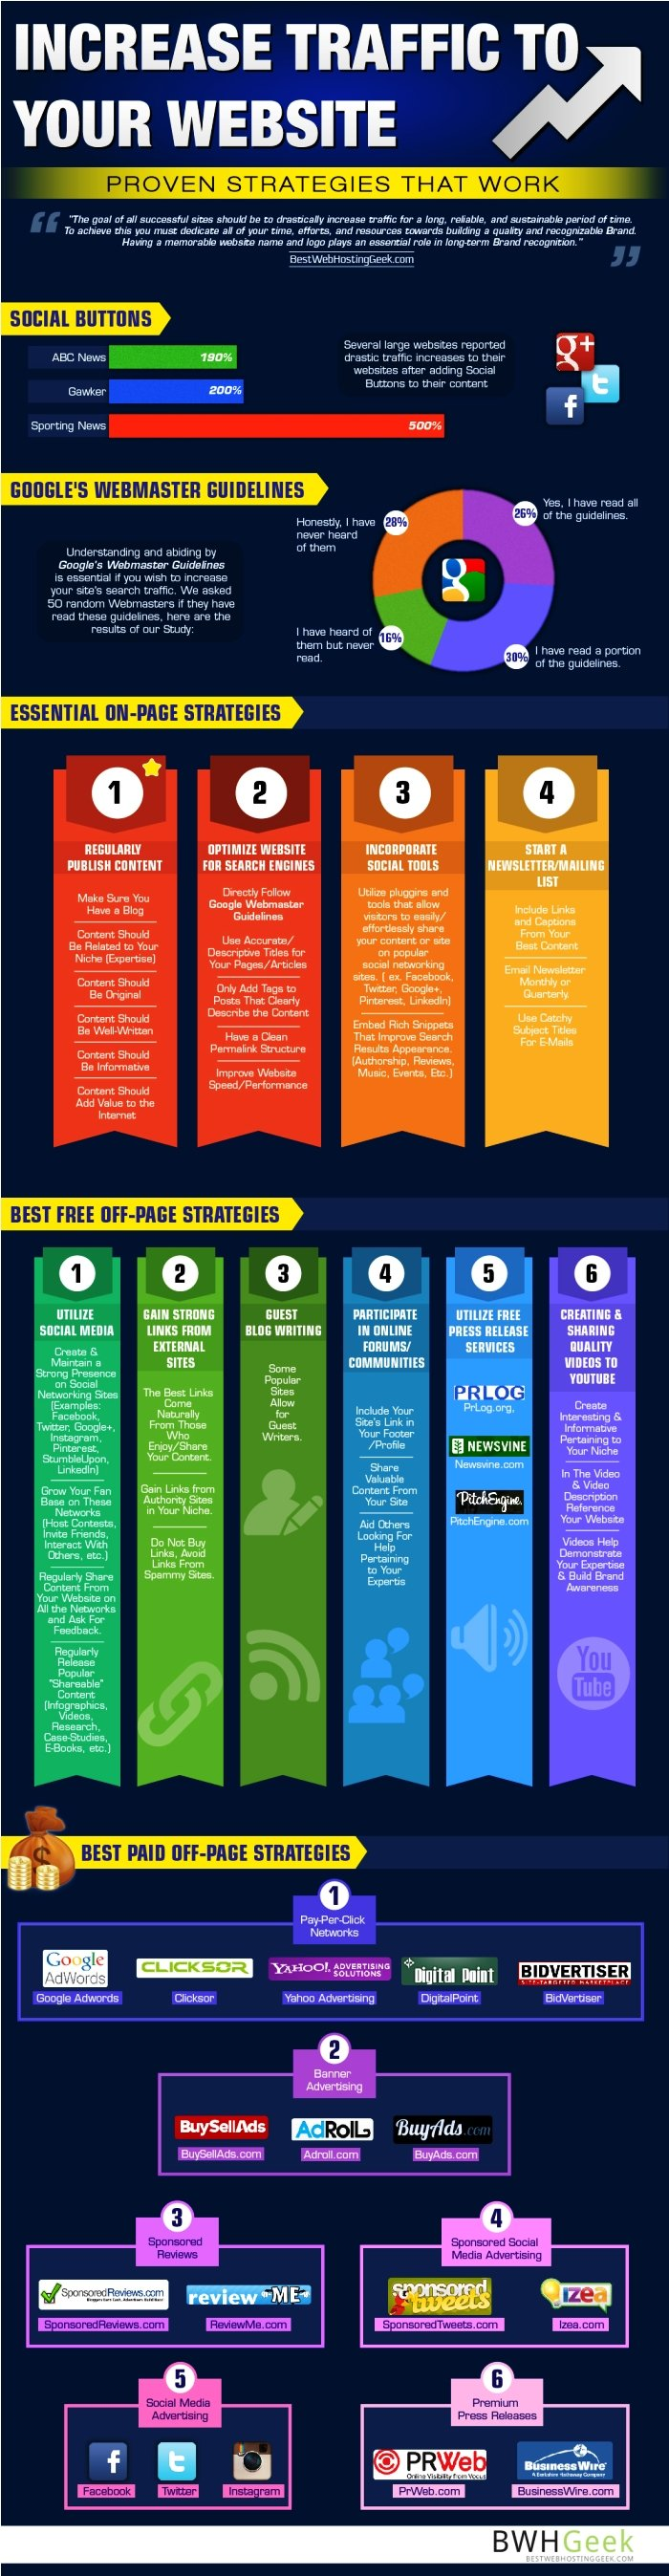 Increase Traffic to Your Website #infographic